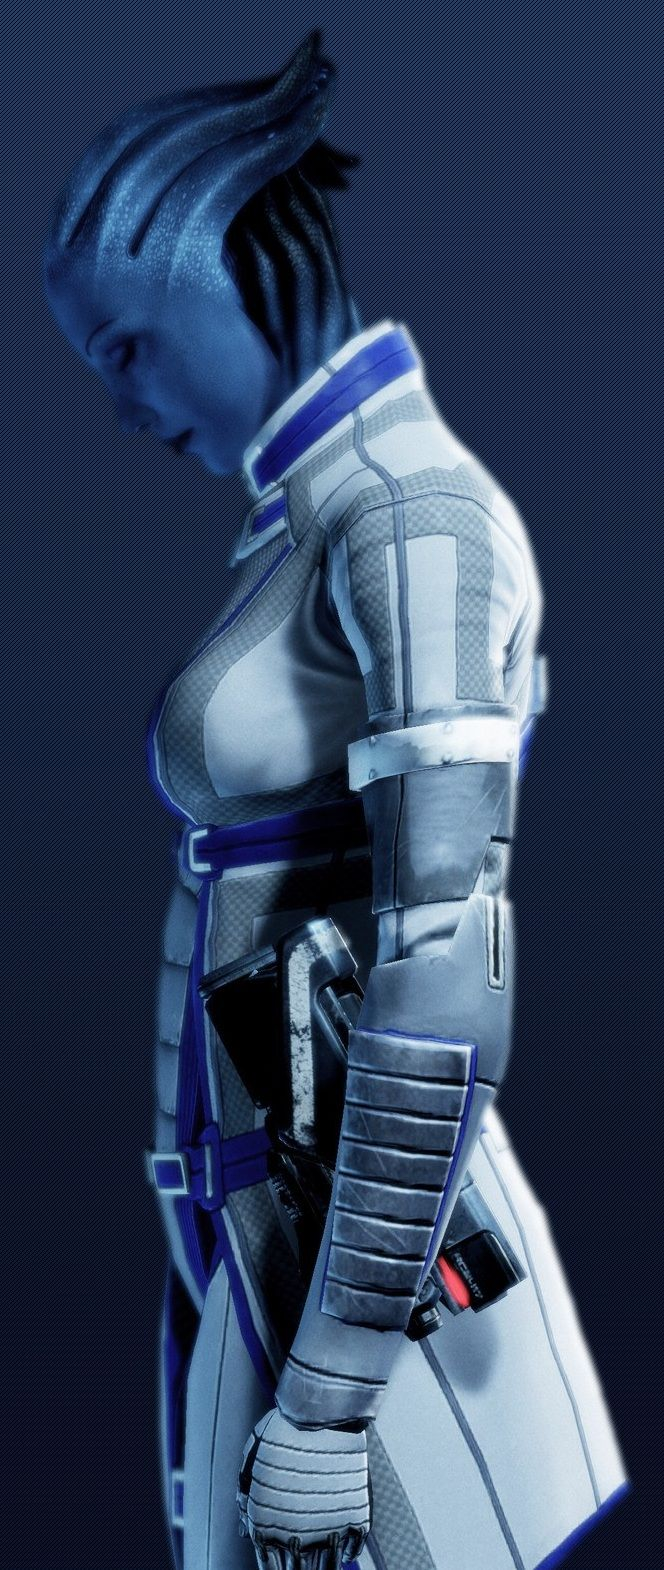 Liara T'Soni, Shadow Broker. One of my favorite characters of all time. Complex and endearing.